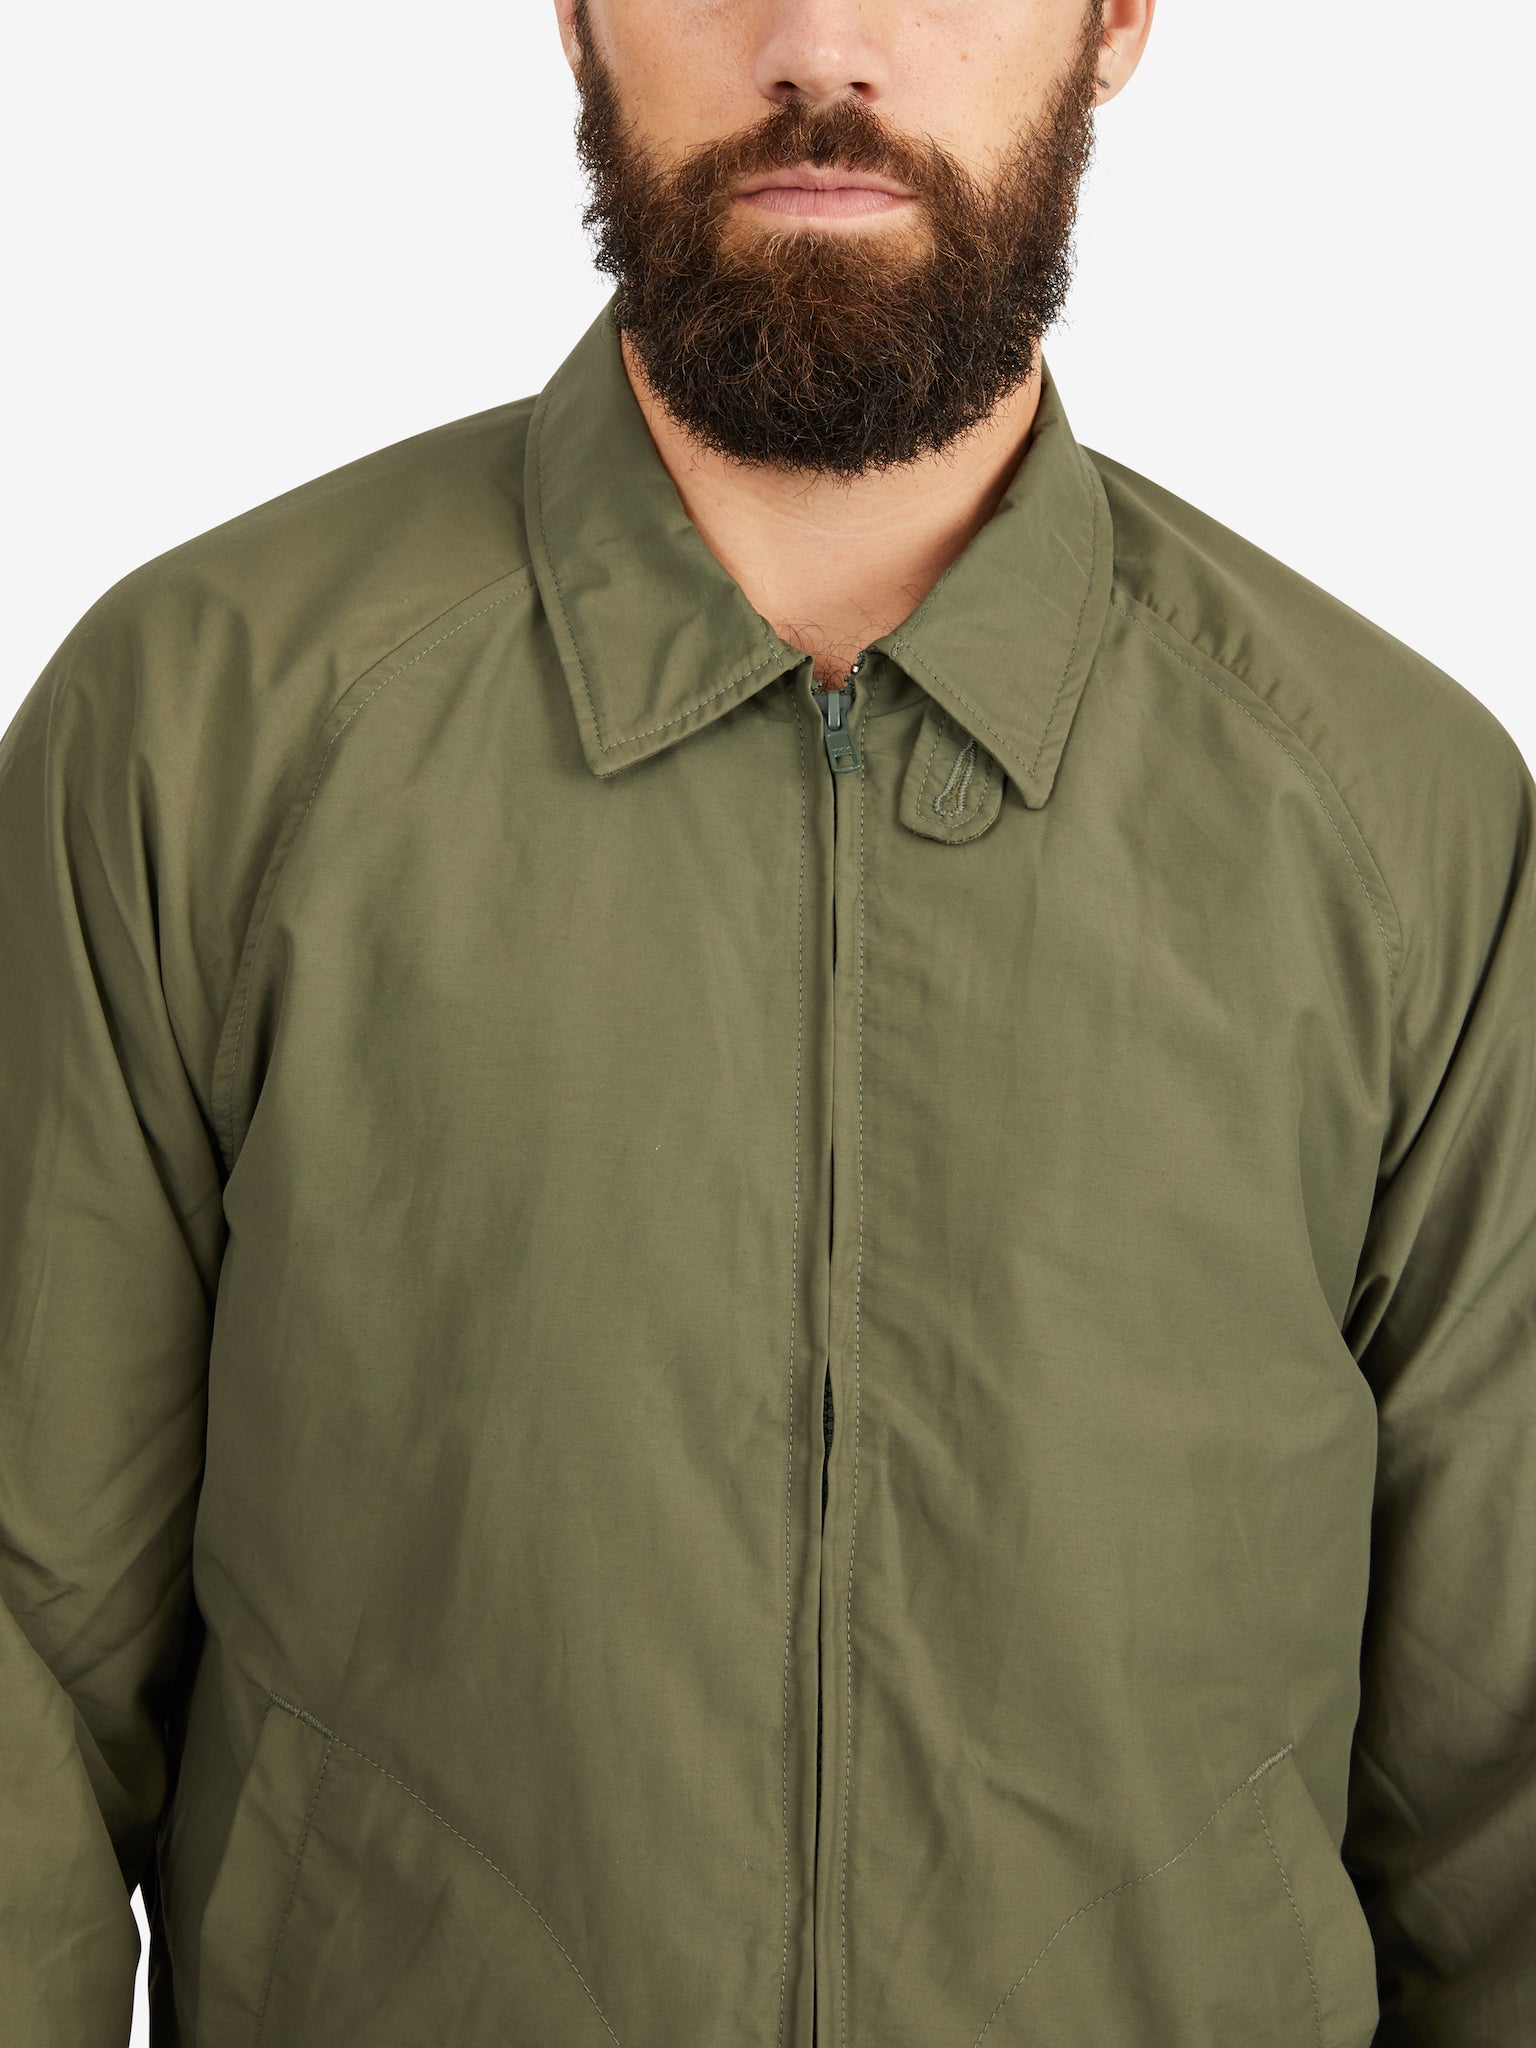 Freeman's Sporting Club Drizzler Jacket